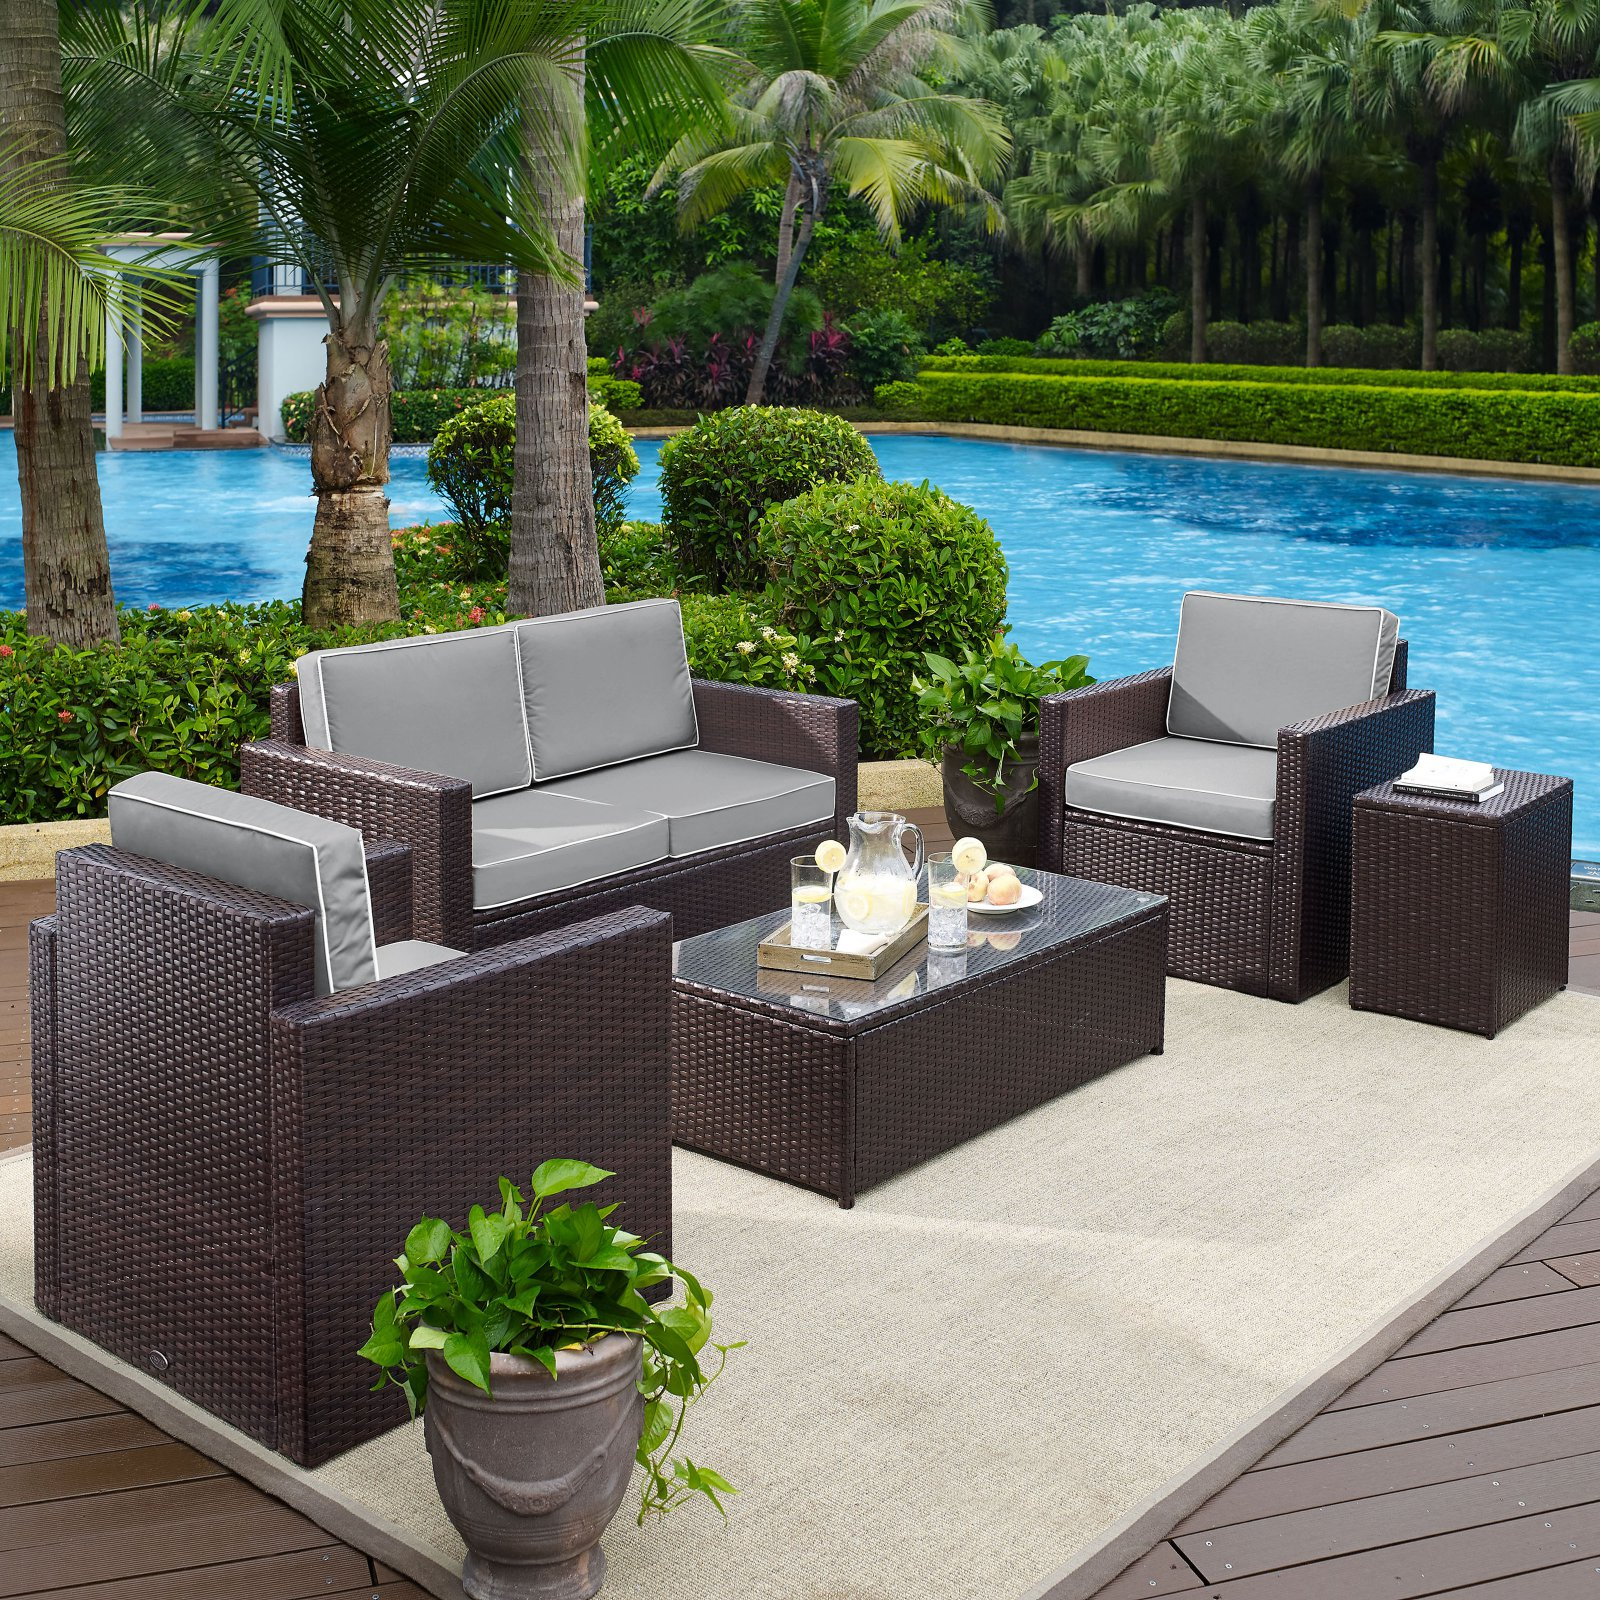 Crosley Furniture KO70053BR-GY Palm Harbor 5-Piece Resin Wicker Outdoor Seating Set (Brown/Grey)